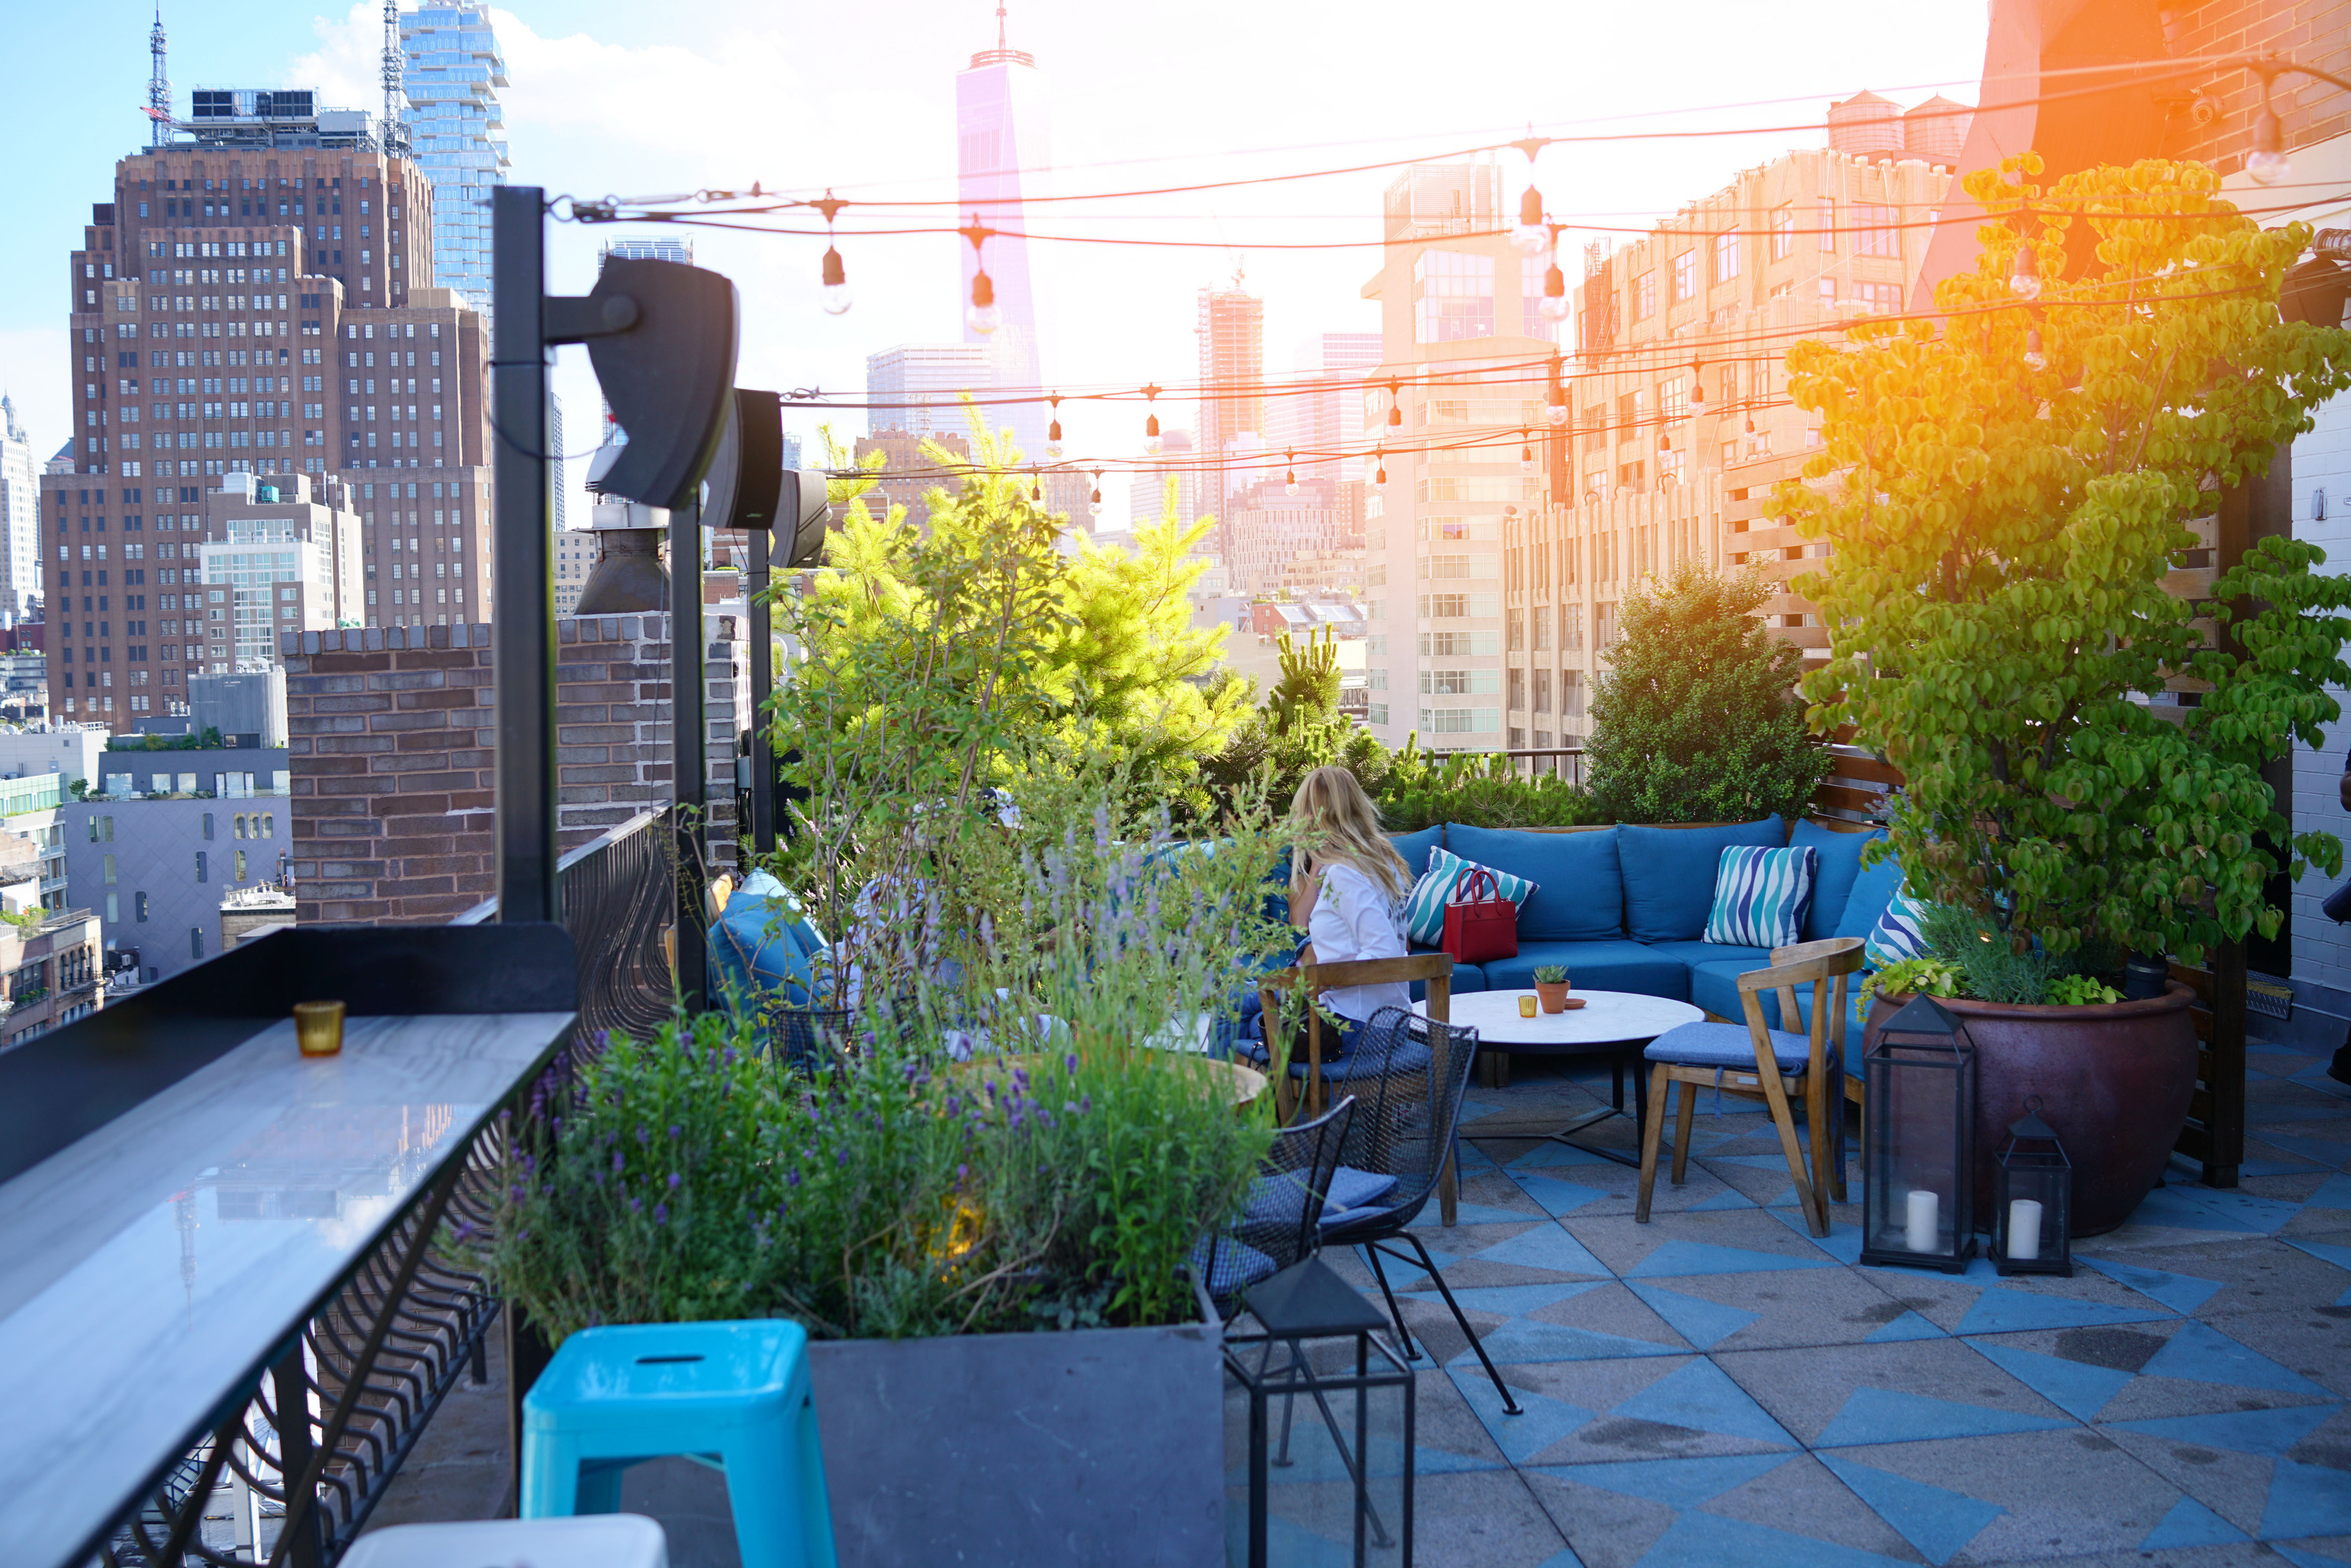 An exciting in-person concert series is taking place on a NYC rooftop next month